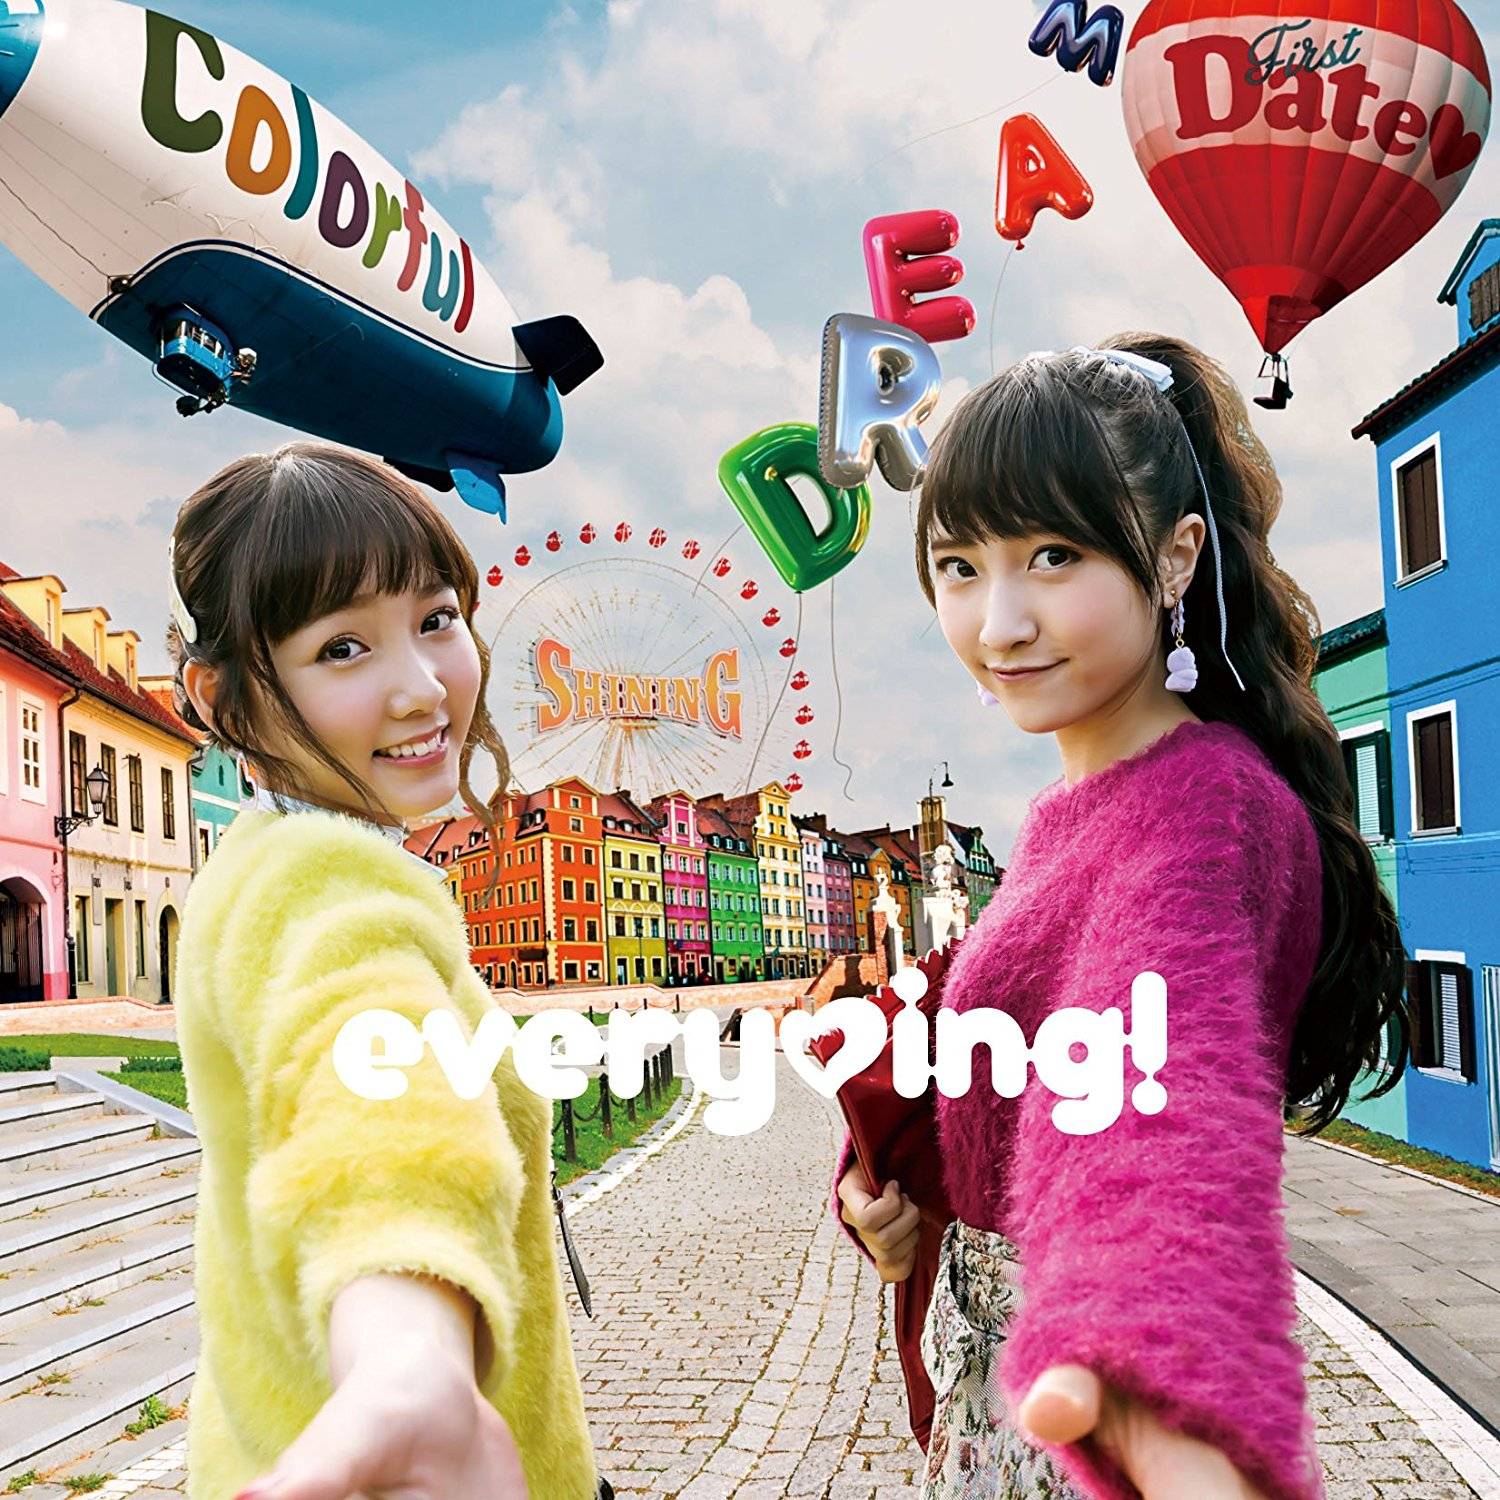 every♥︎ing!「Colorful Shining Dream First Date」